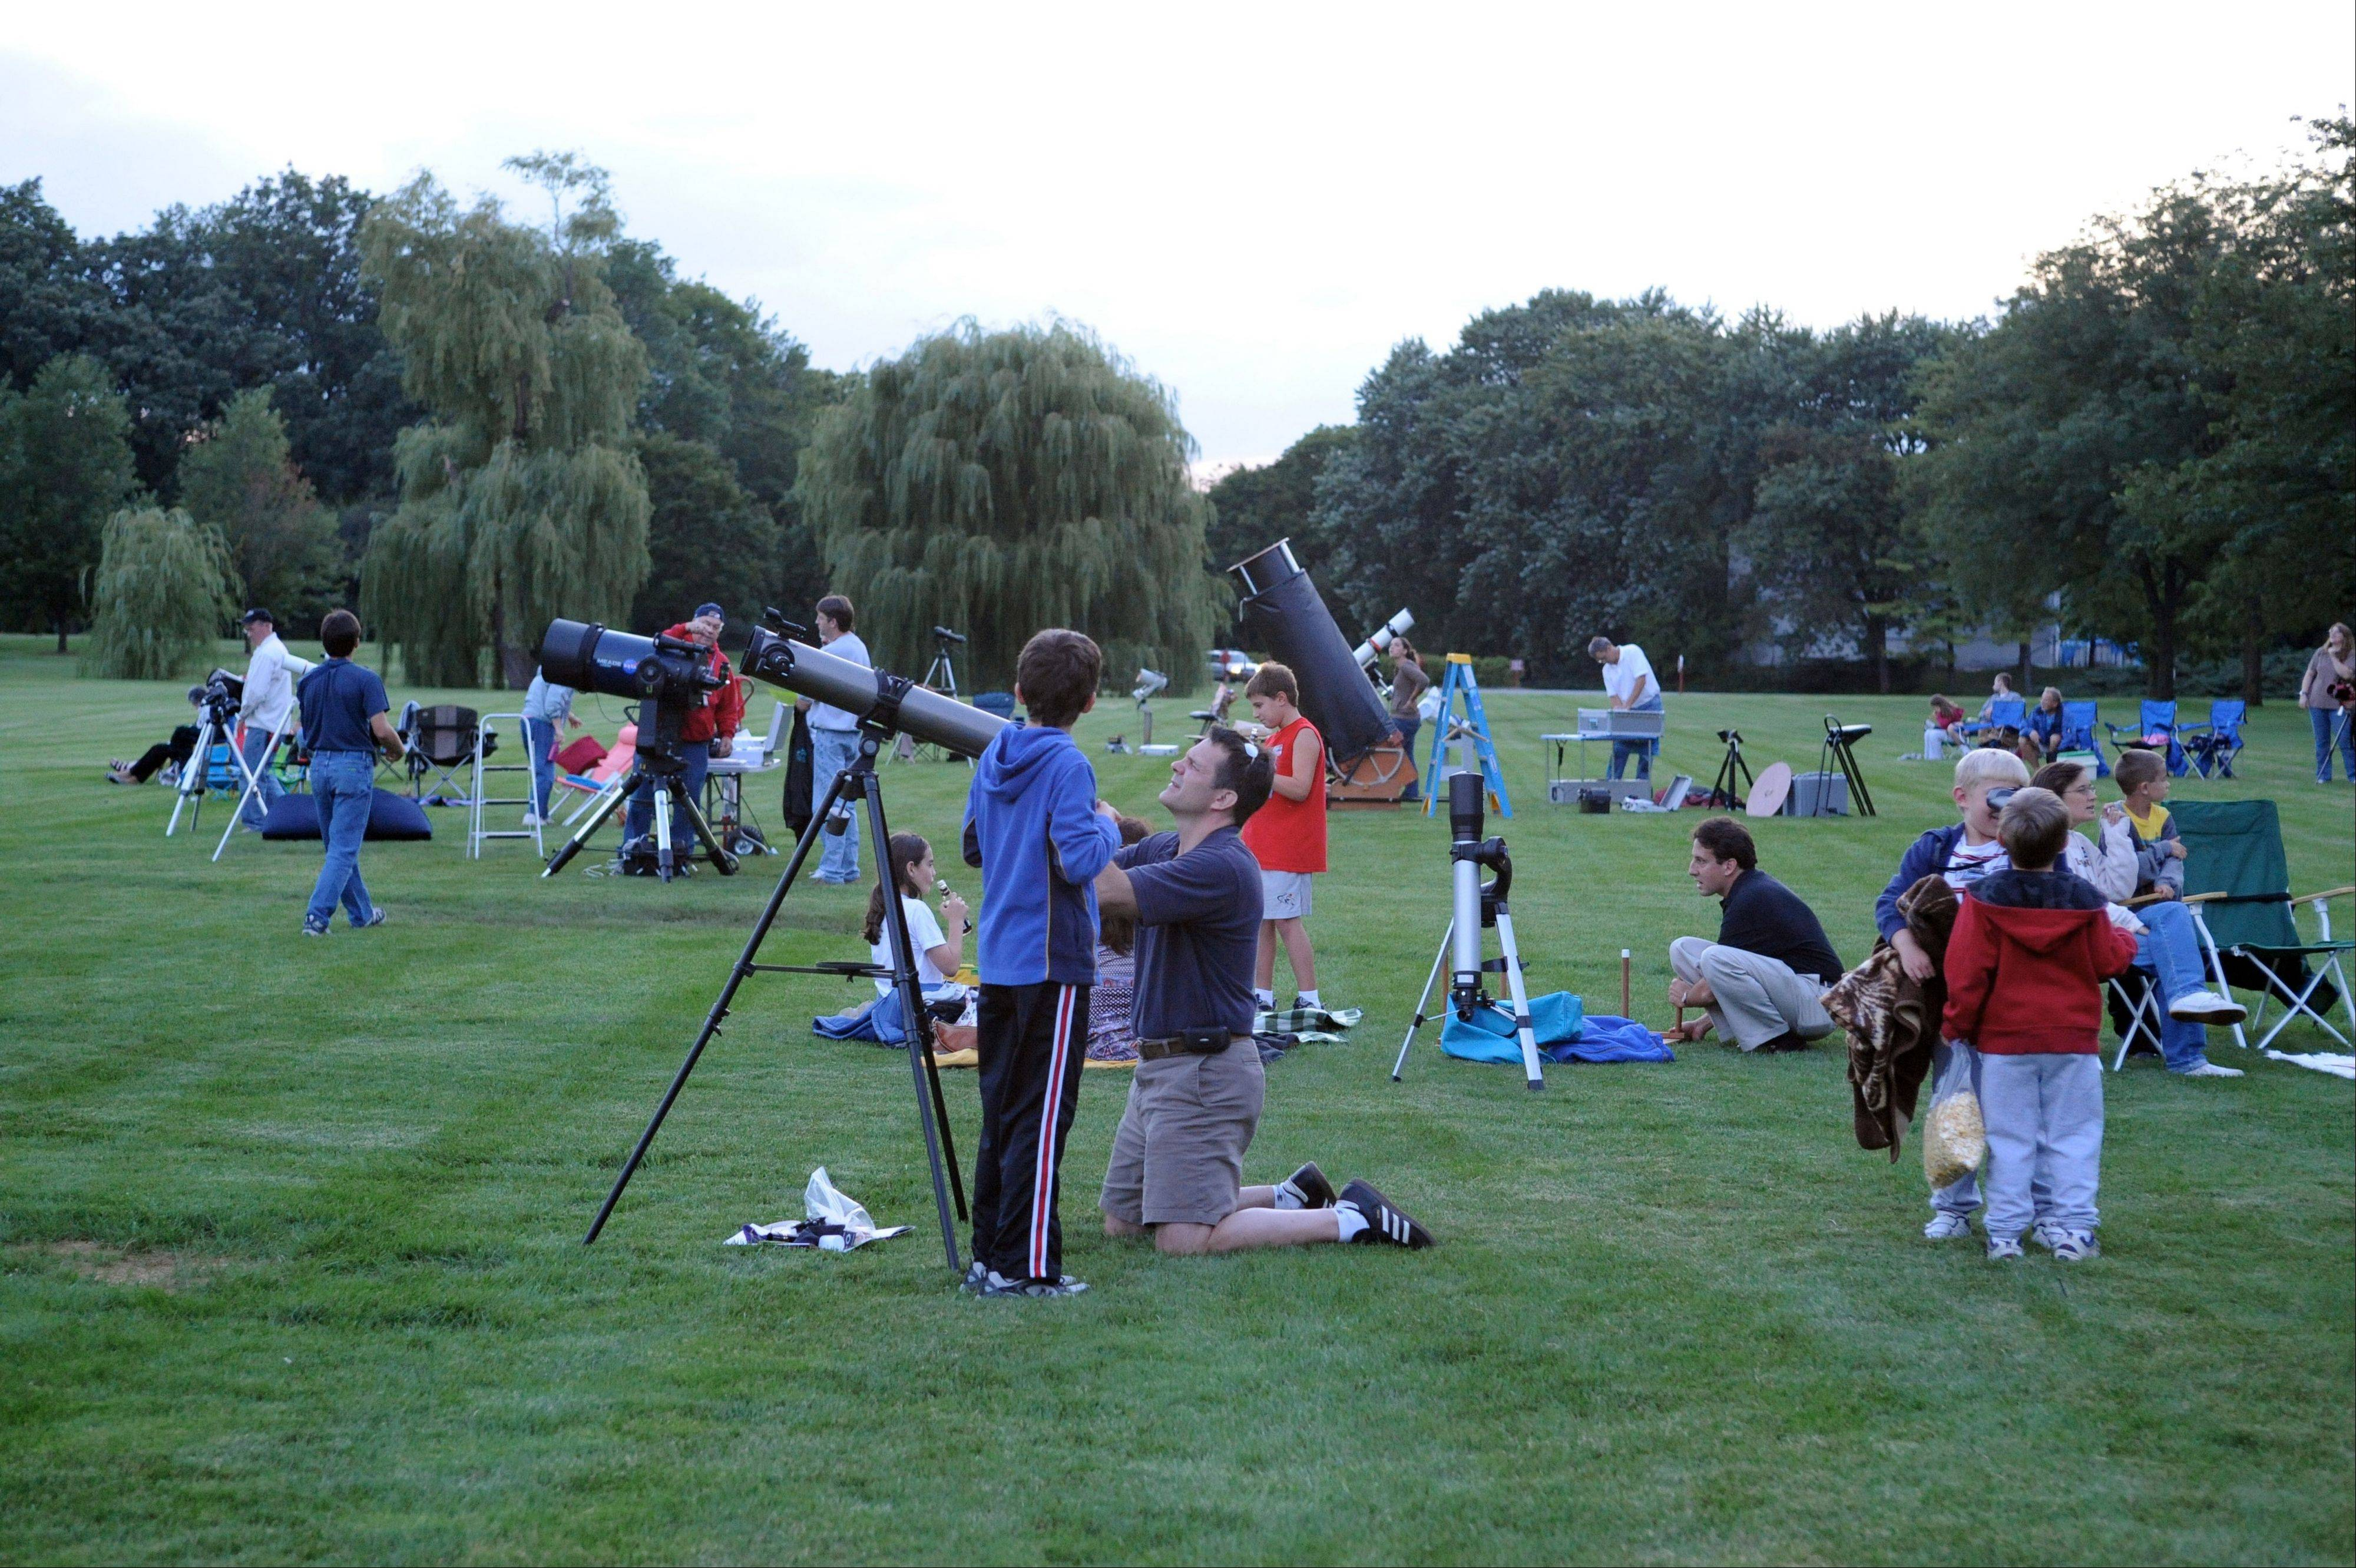 People gather on the grounds of Cantigny Park in Wheaton each year for the Adler Planetarium's annual Perseid Meteor Shower Star Party. This year's party is Monday night, Aug. 12.